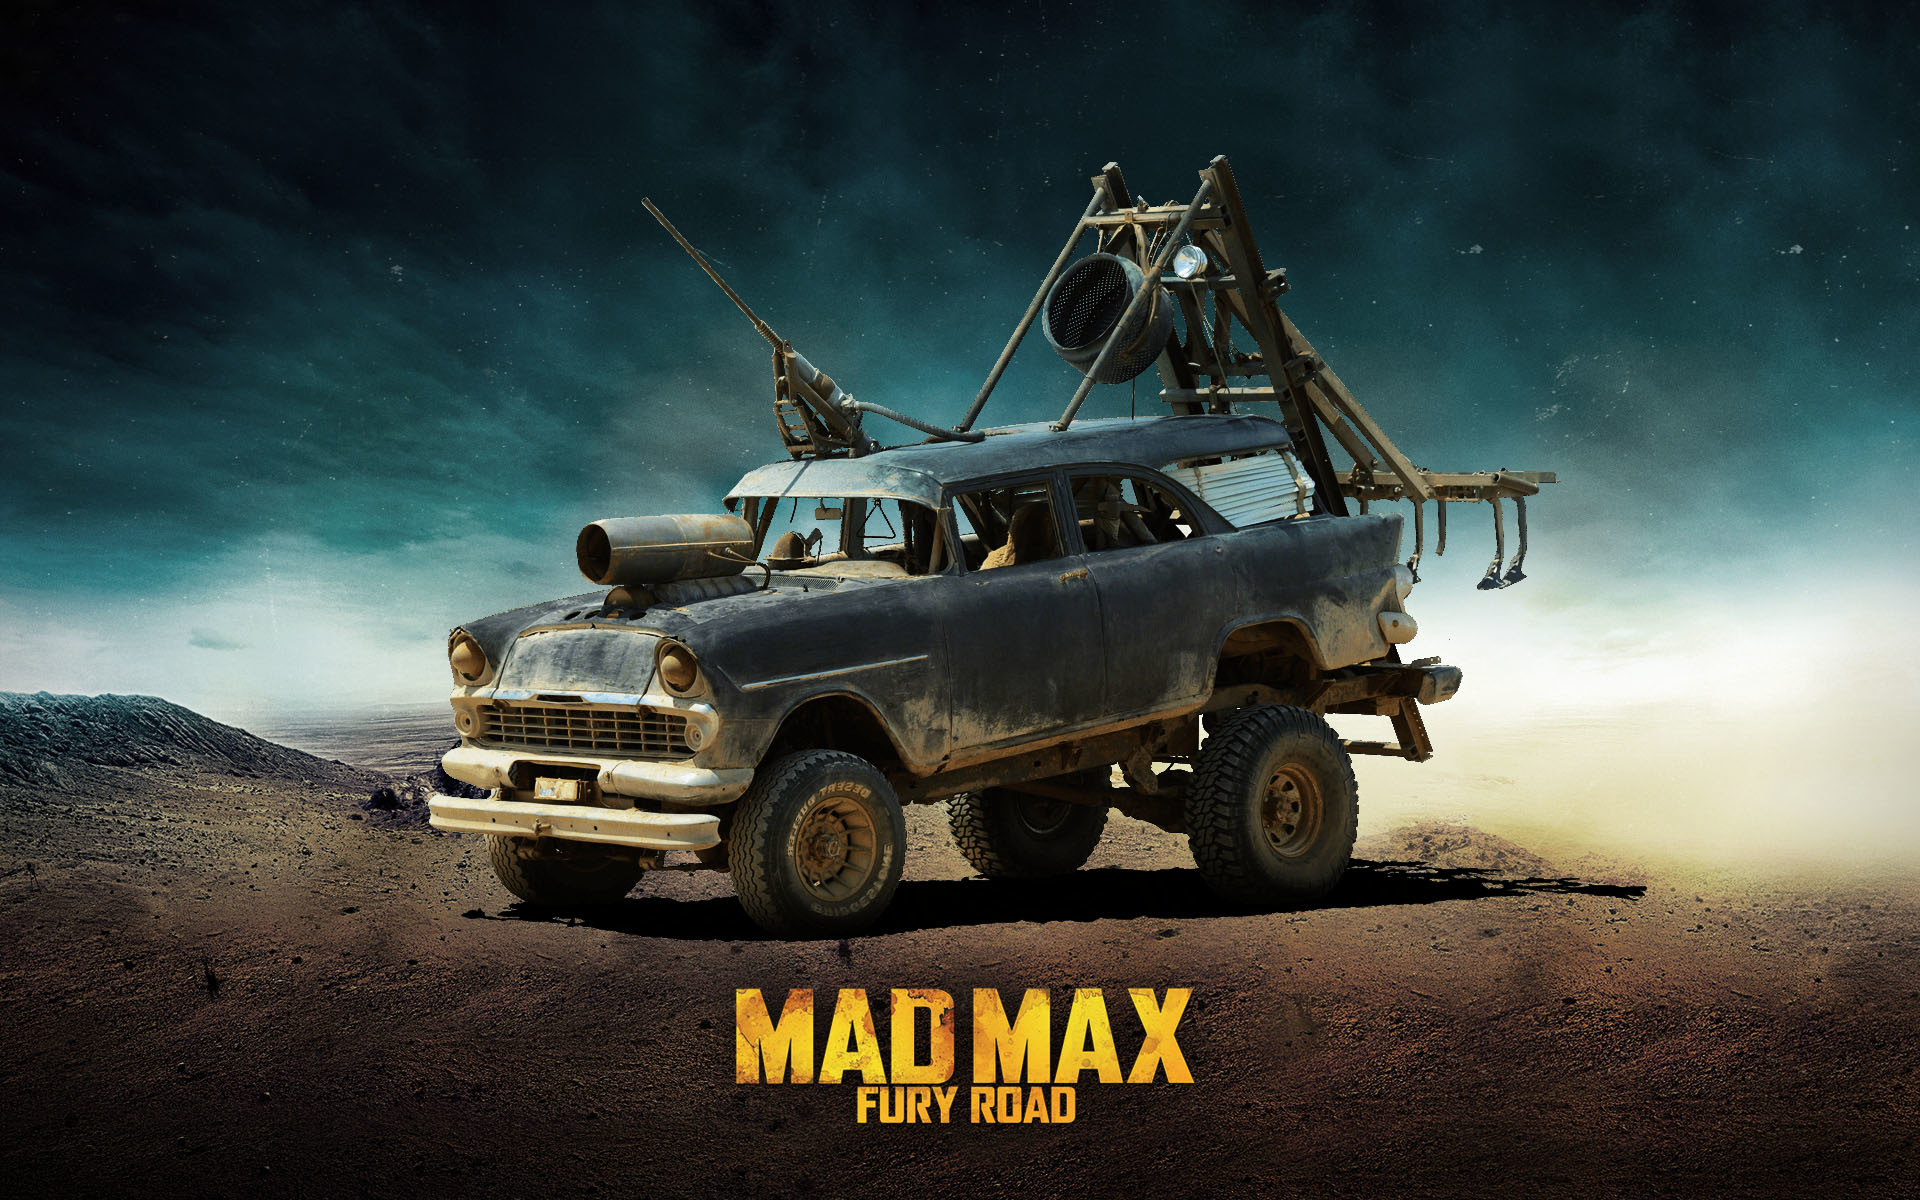 Image for The Ploughboy Mad Max Fury Road Cars 2015 Movie 9 HD Quality  Wallpapers